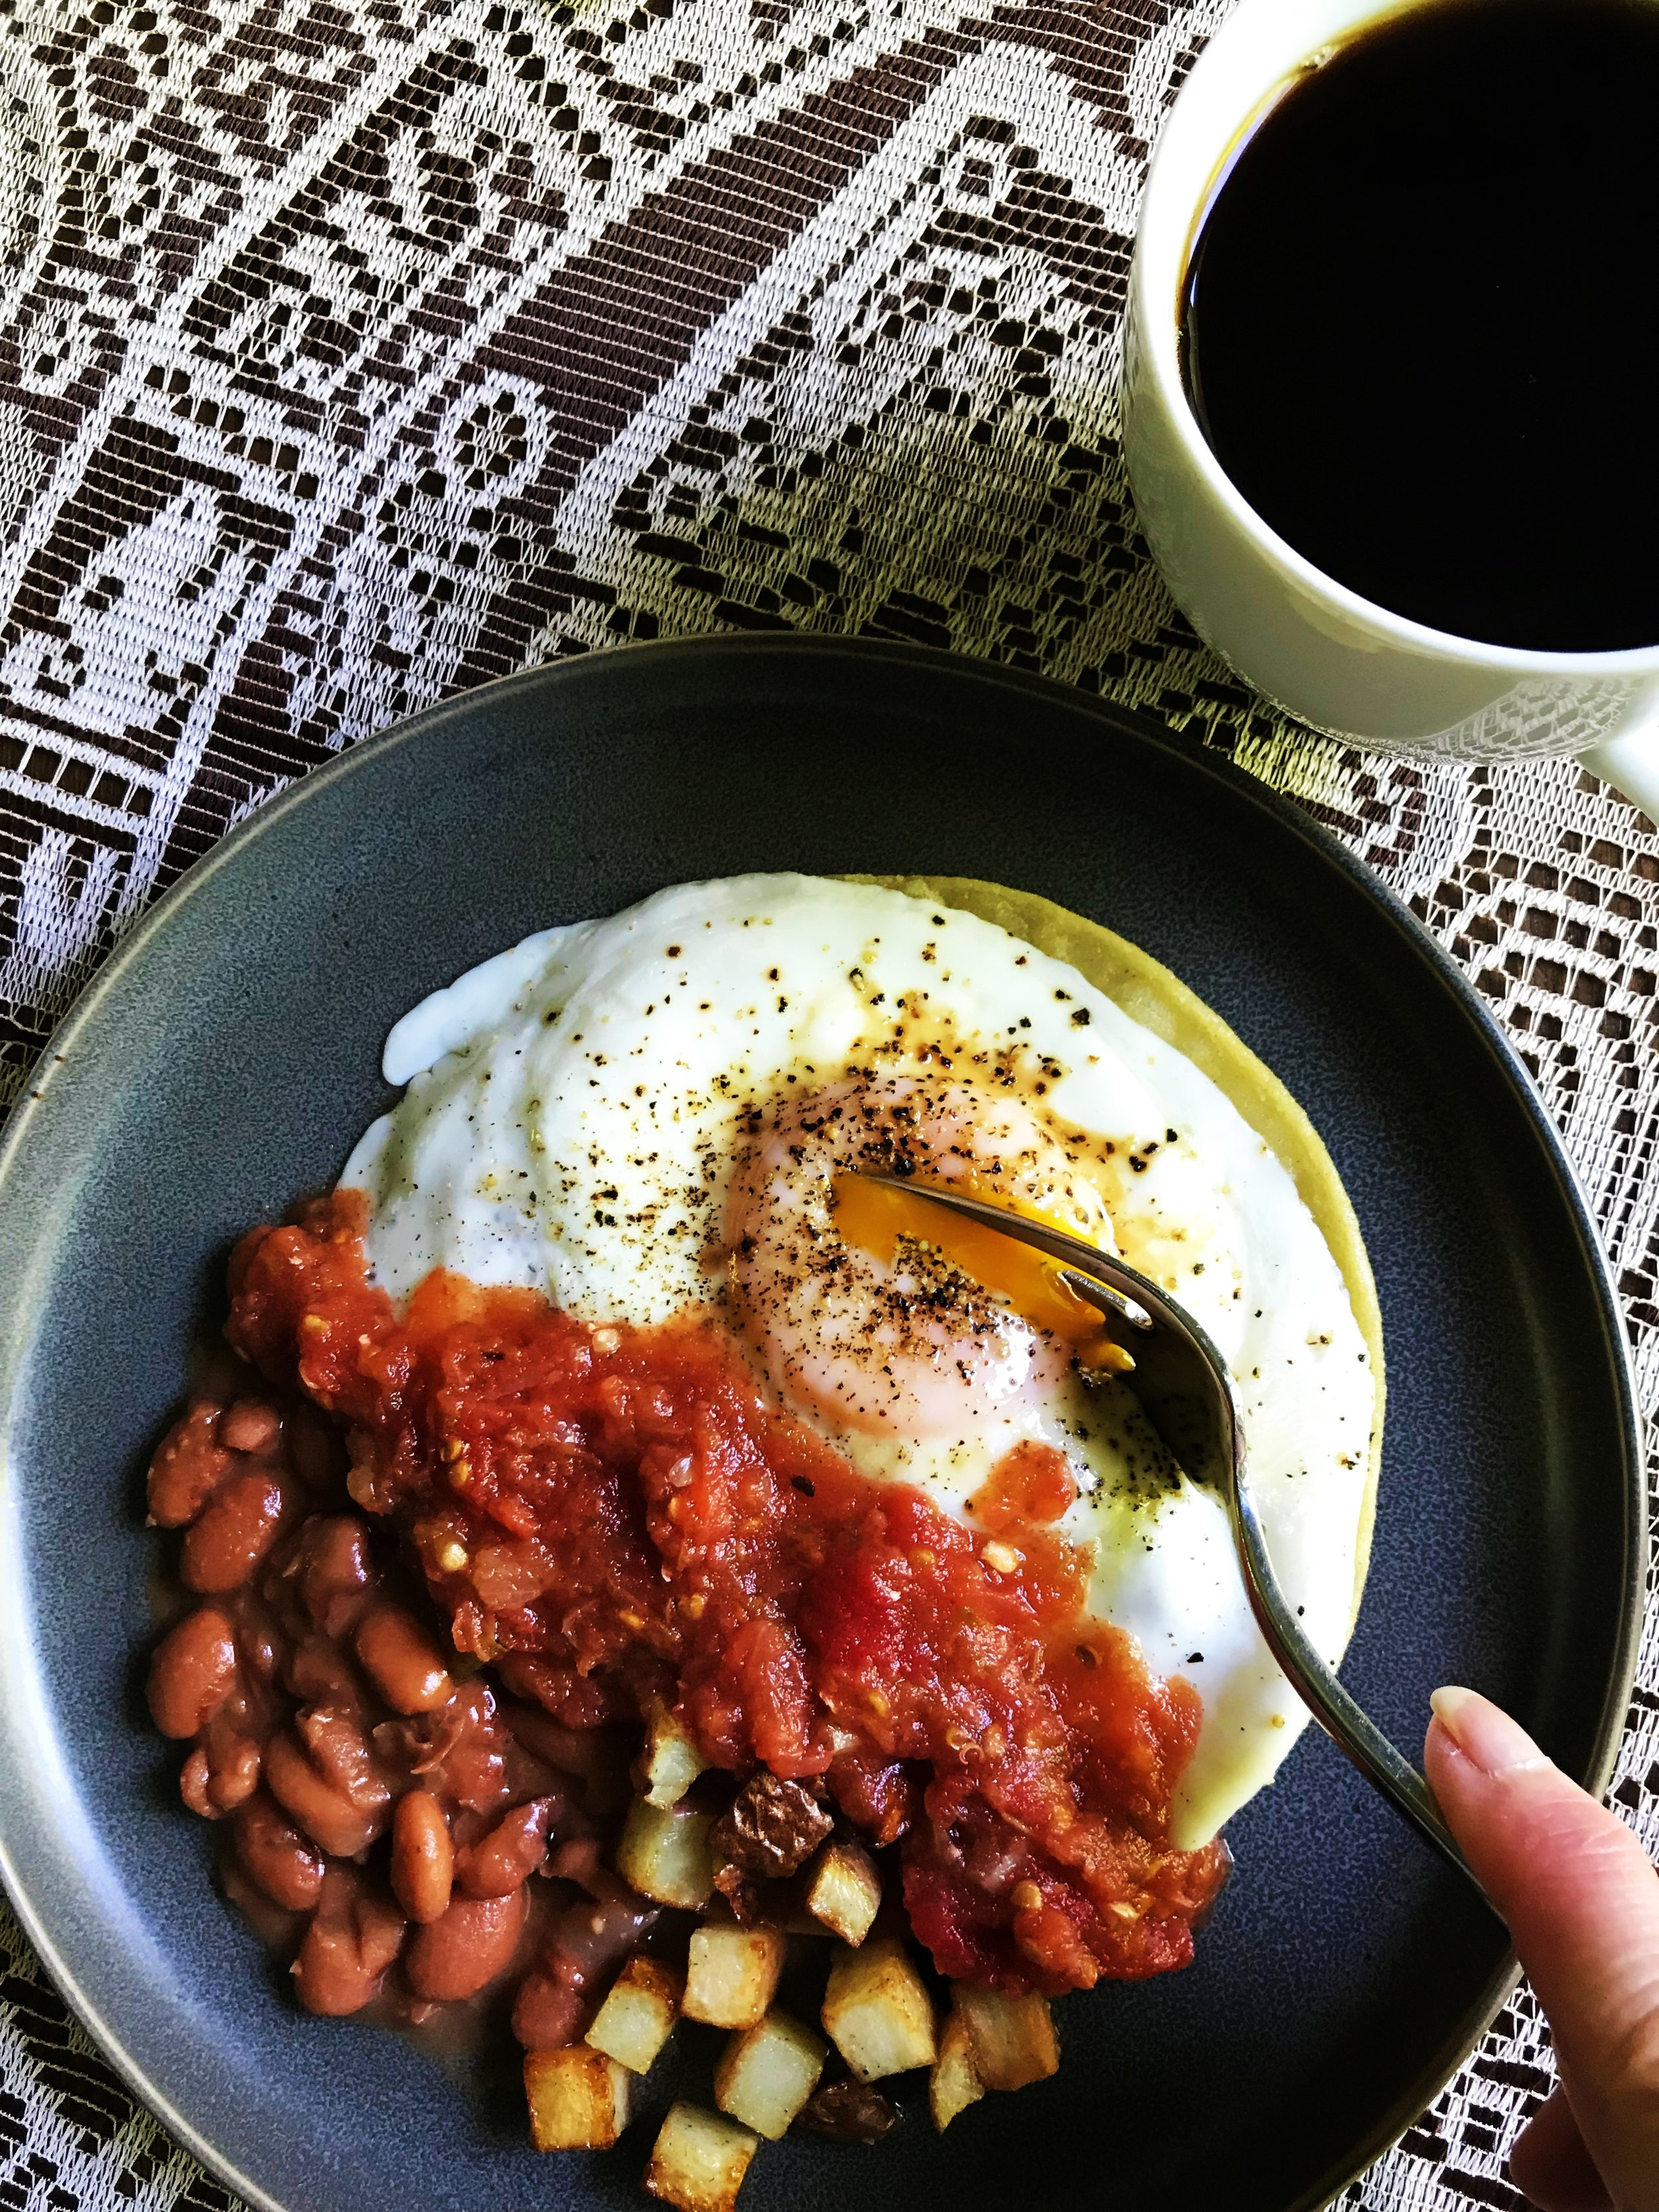 Huevos Rancheros with Salsa de Molcajete and a cup of coffee. I bought the tablecloth in these pictures from a vendor at Teotihuacan, the ancient pyramids outside Mexico City, who told me it was made from maguey plant fibers (an ancient method).